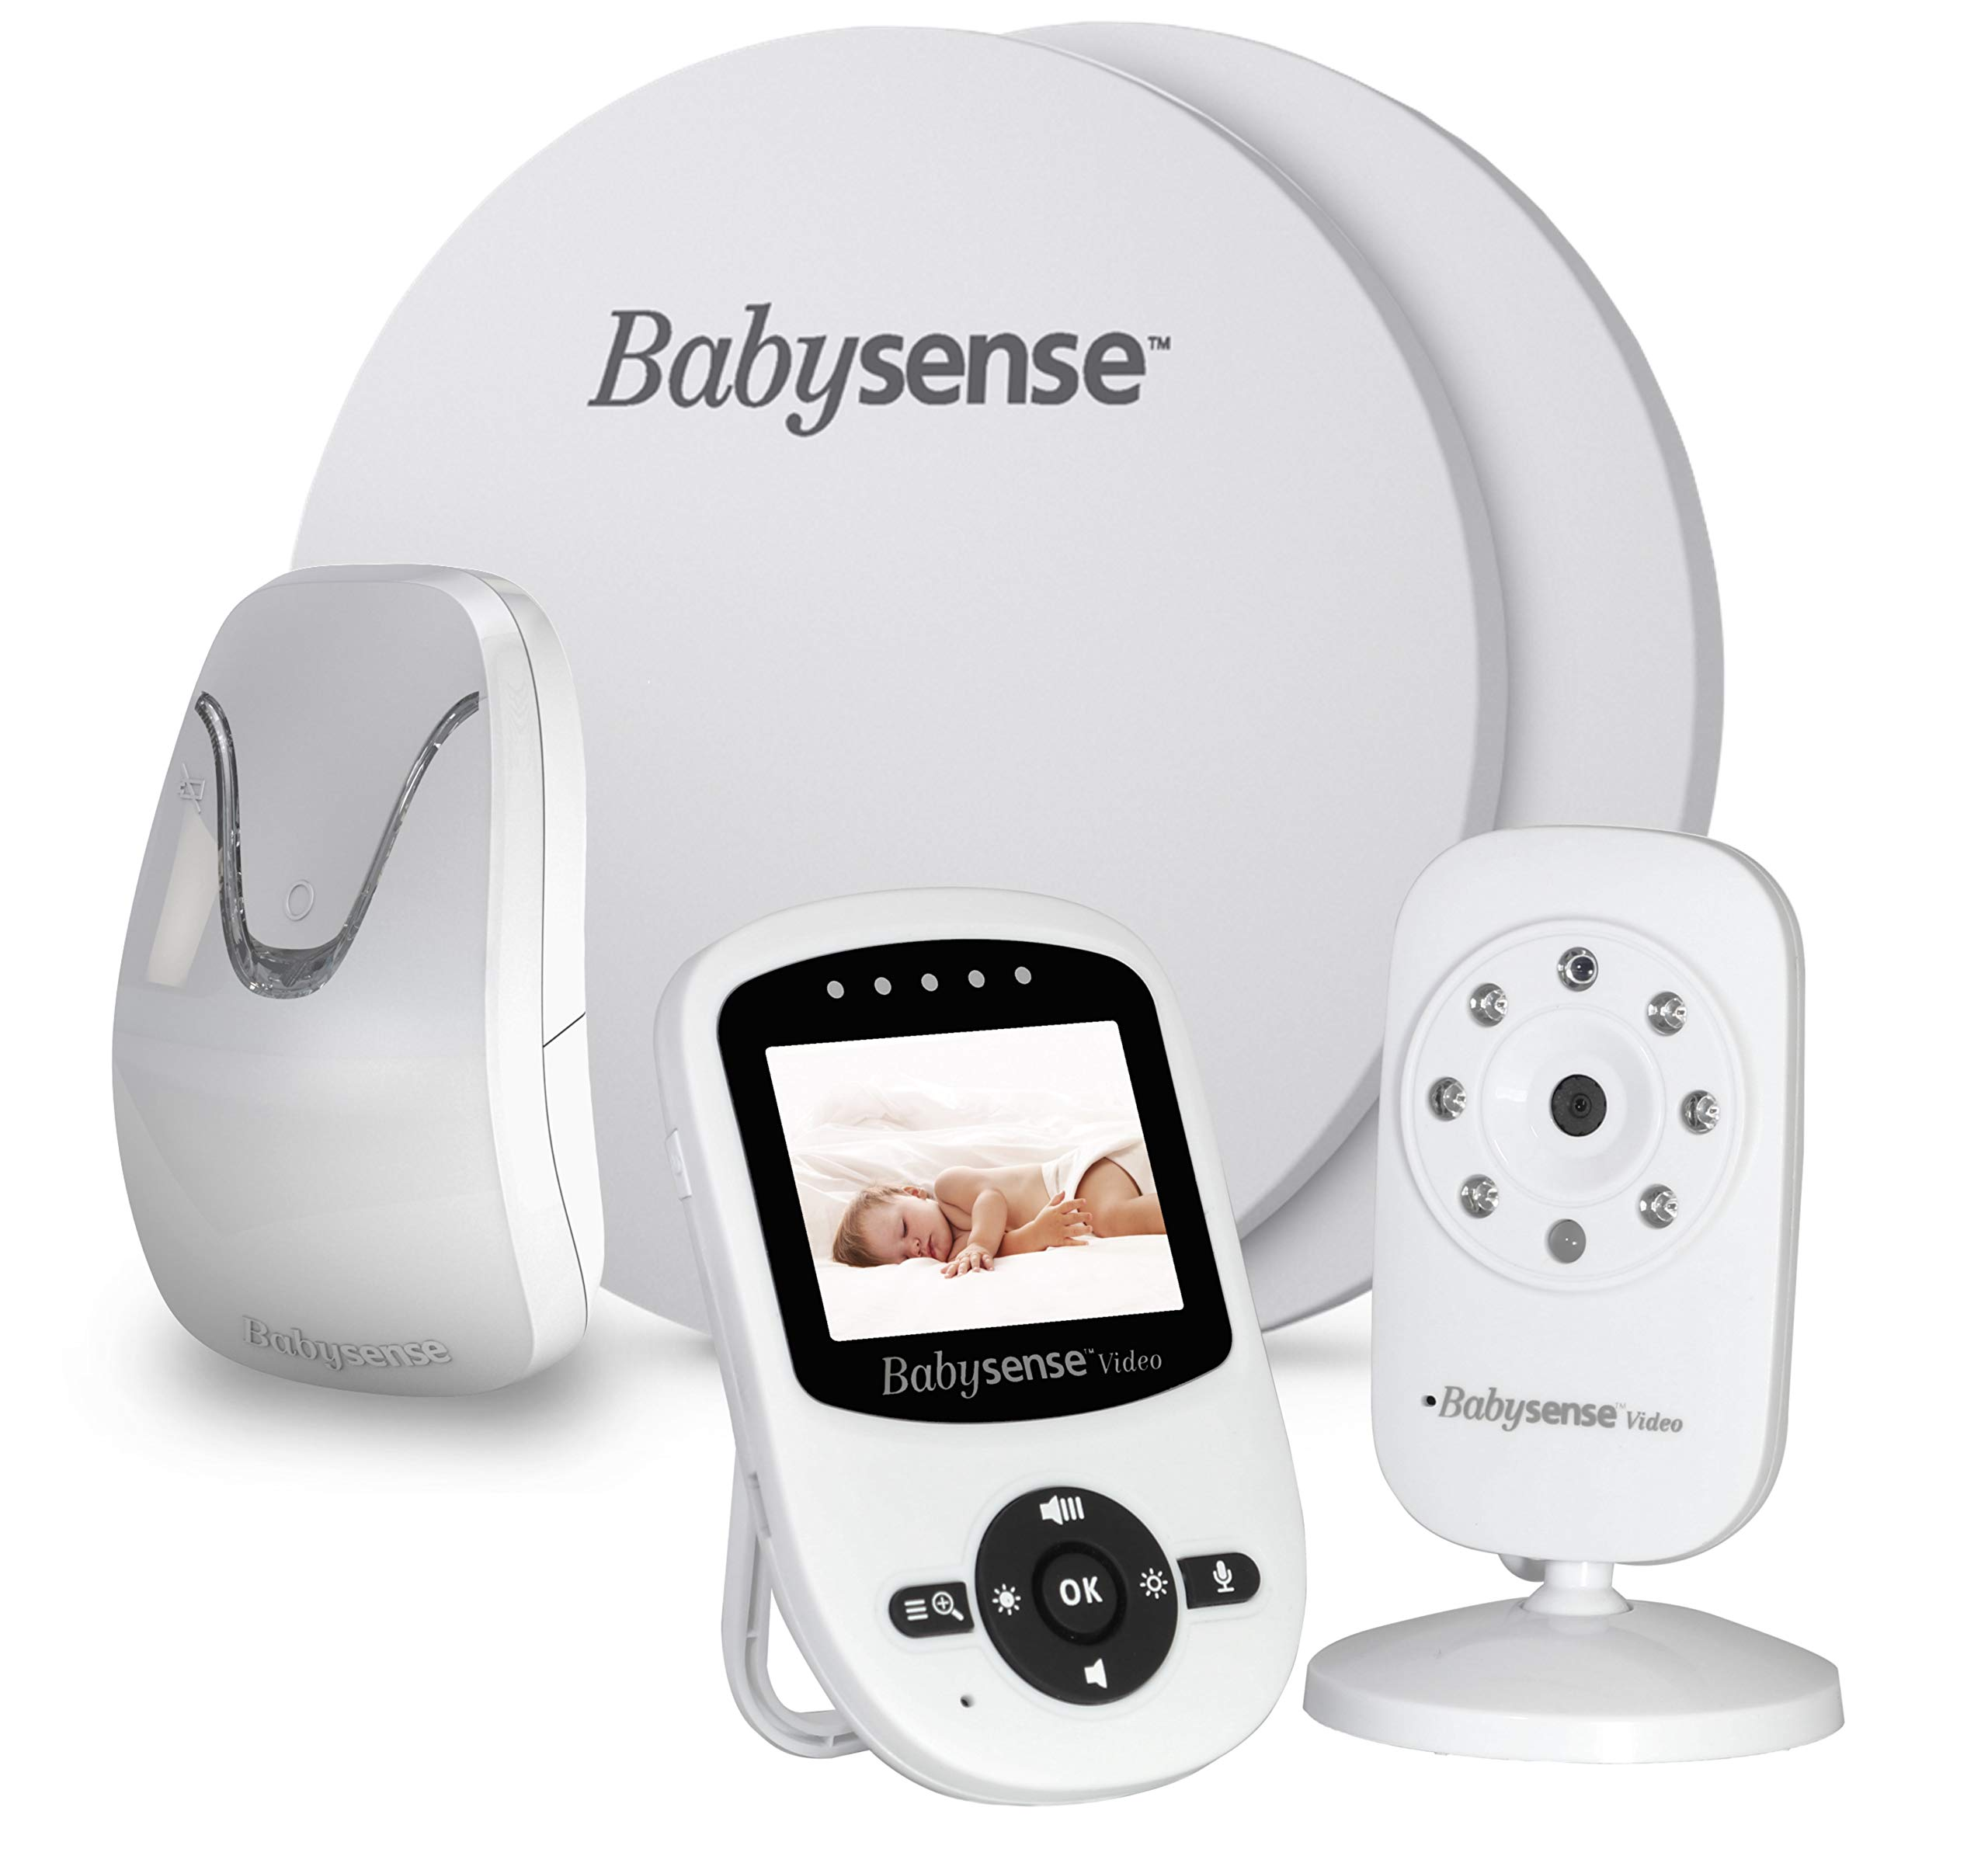 New Model - Babysense Video & Baby Movement Monitor - Bundle Pack - Babysense Video Baby Monitor V24 with Babysense 7 Under-The-Mattress Baby Movement Monitor - 2 in 1 by BABY SENSE (Image #1)